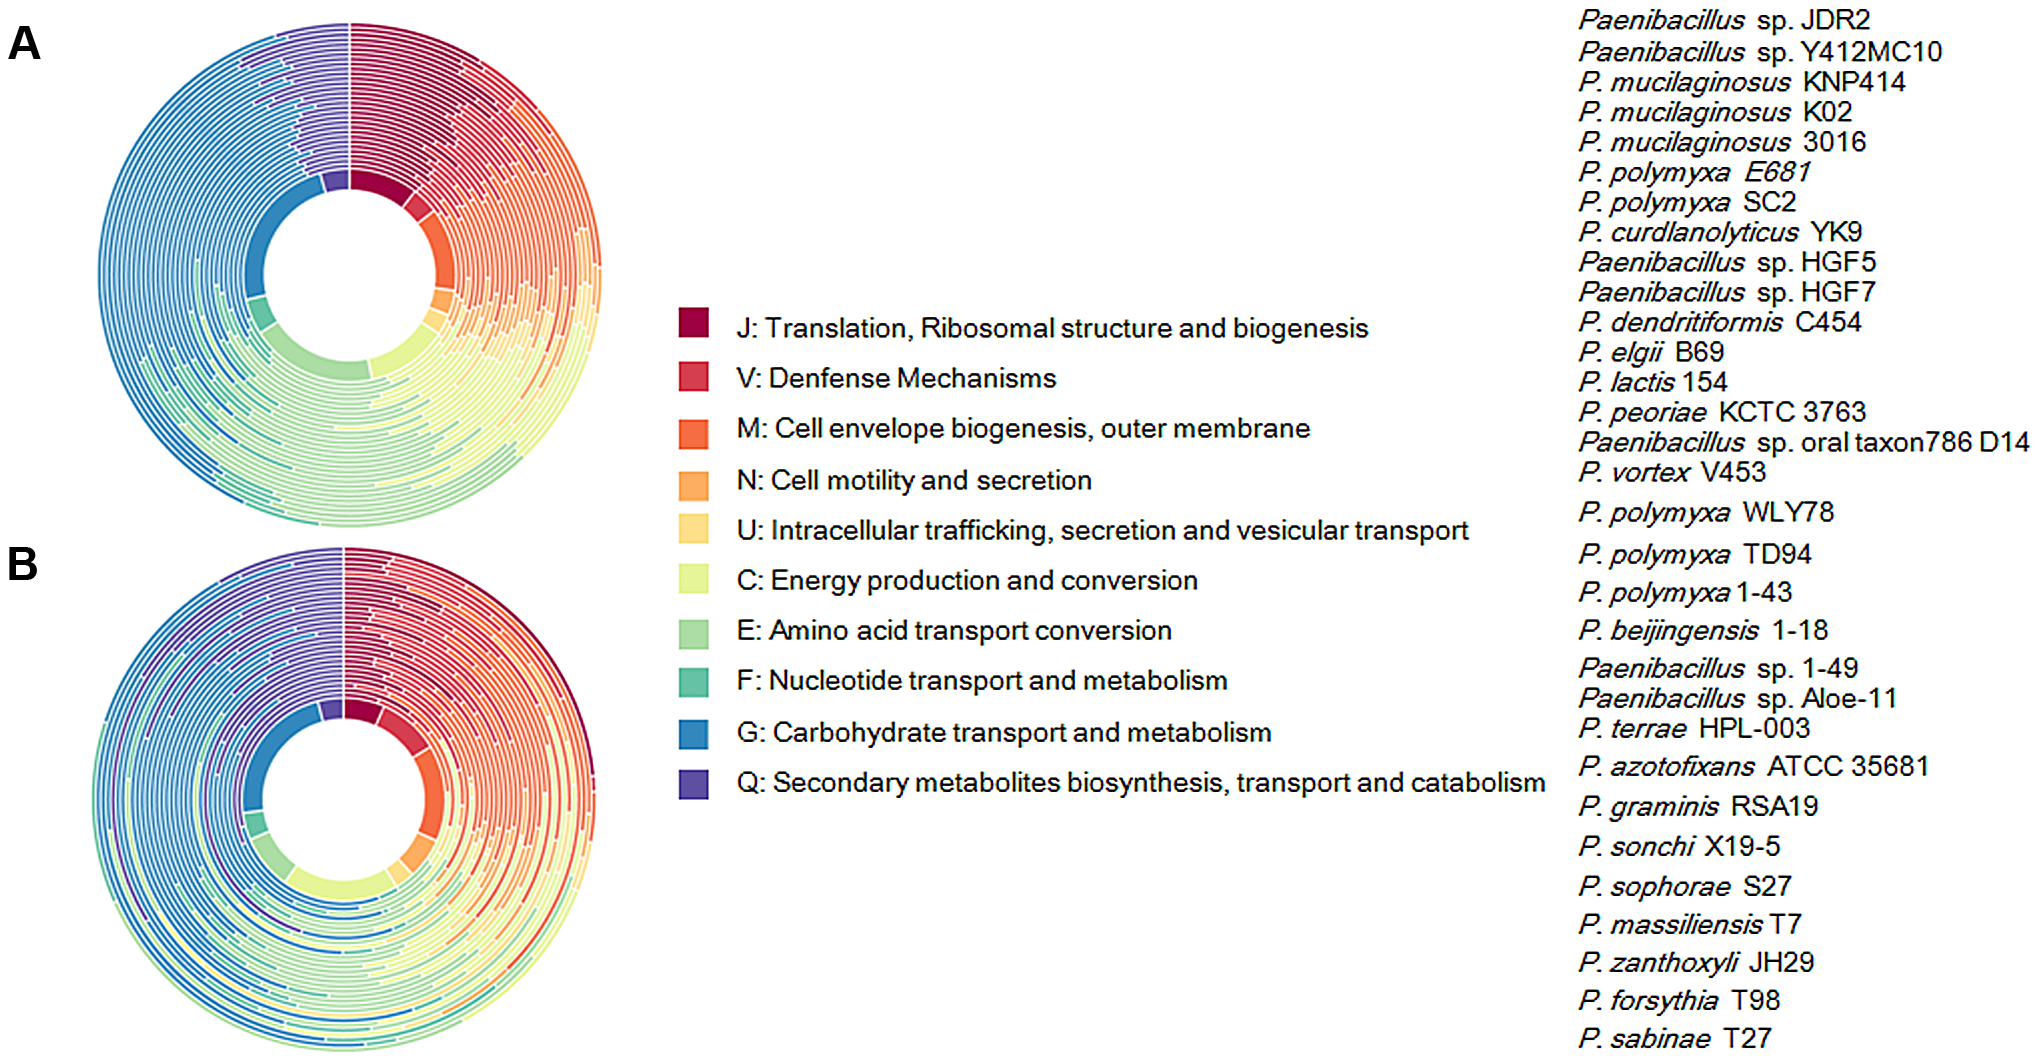 Functional classification of gene content of the 31 <i>Paenibacillus</i> strains.